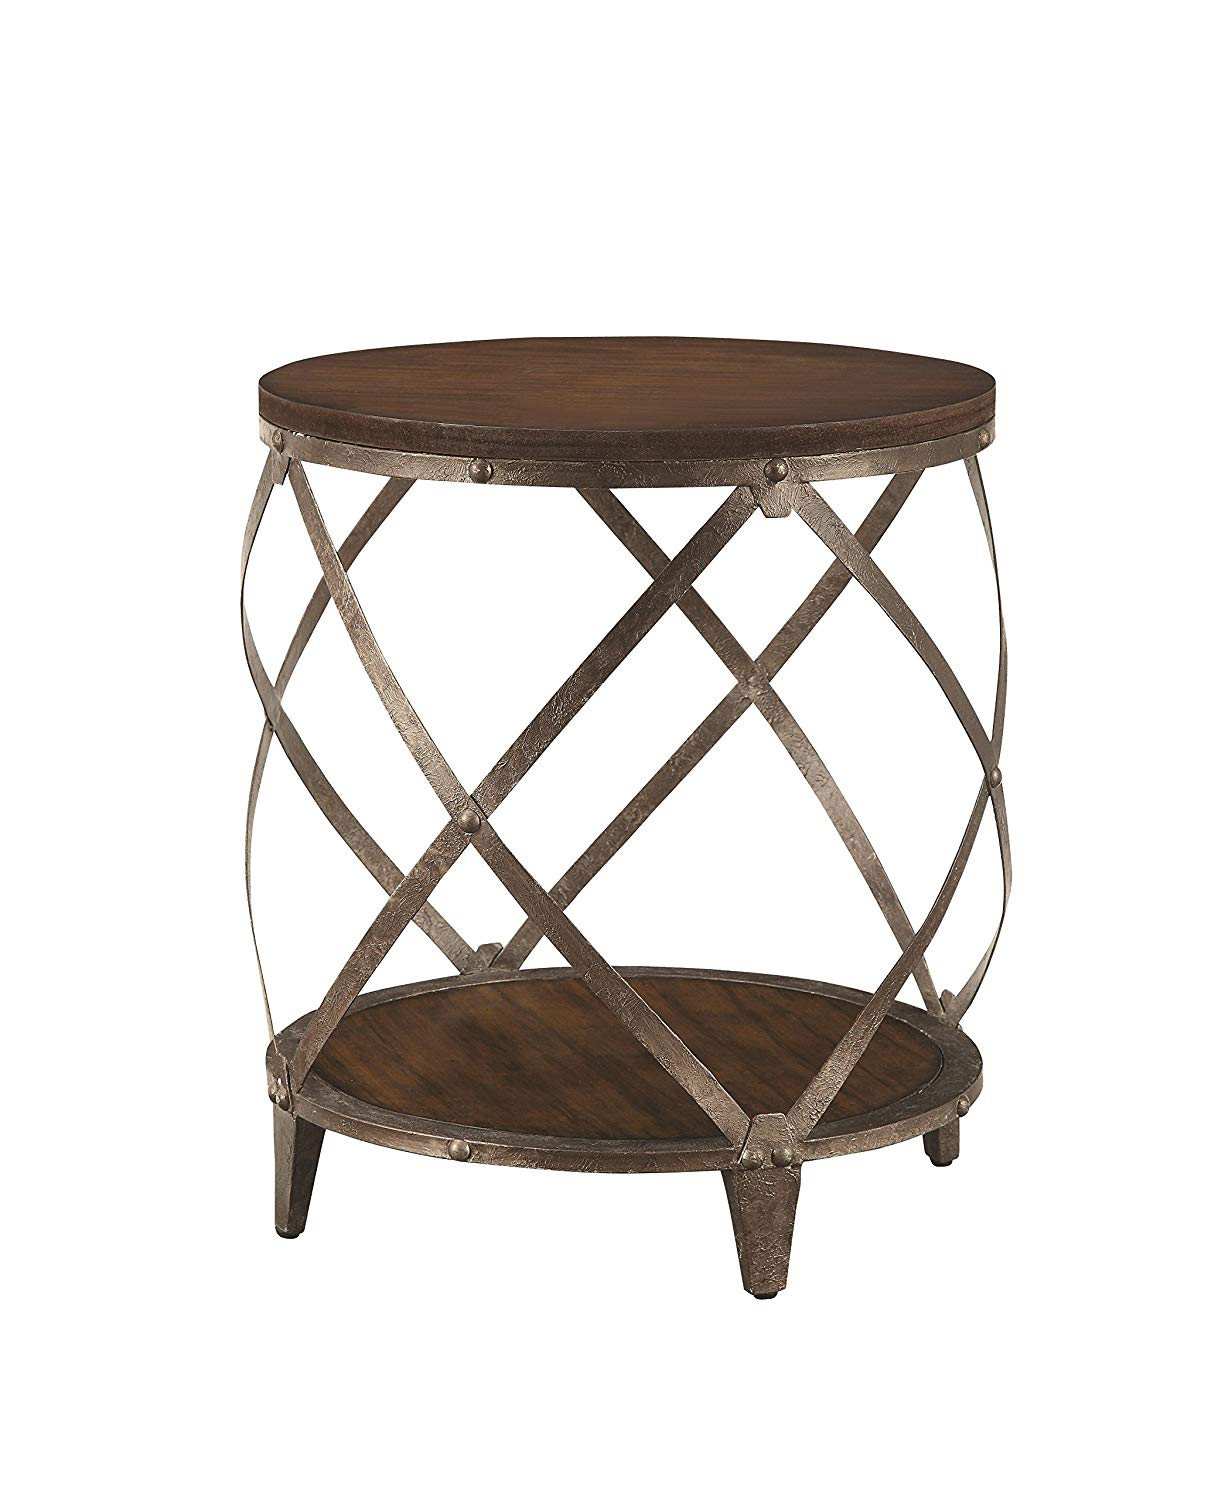 metal accent table with drum shape brown kitchen dining round iron modern dressing chest furniture reclaimed wood nesting tables rustic coffee and side concrete look bath beyond